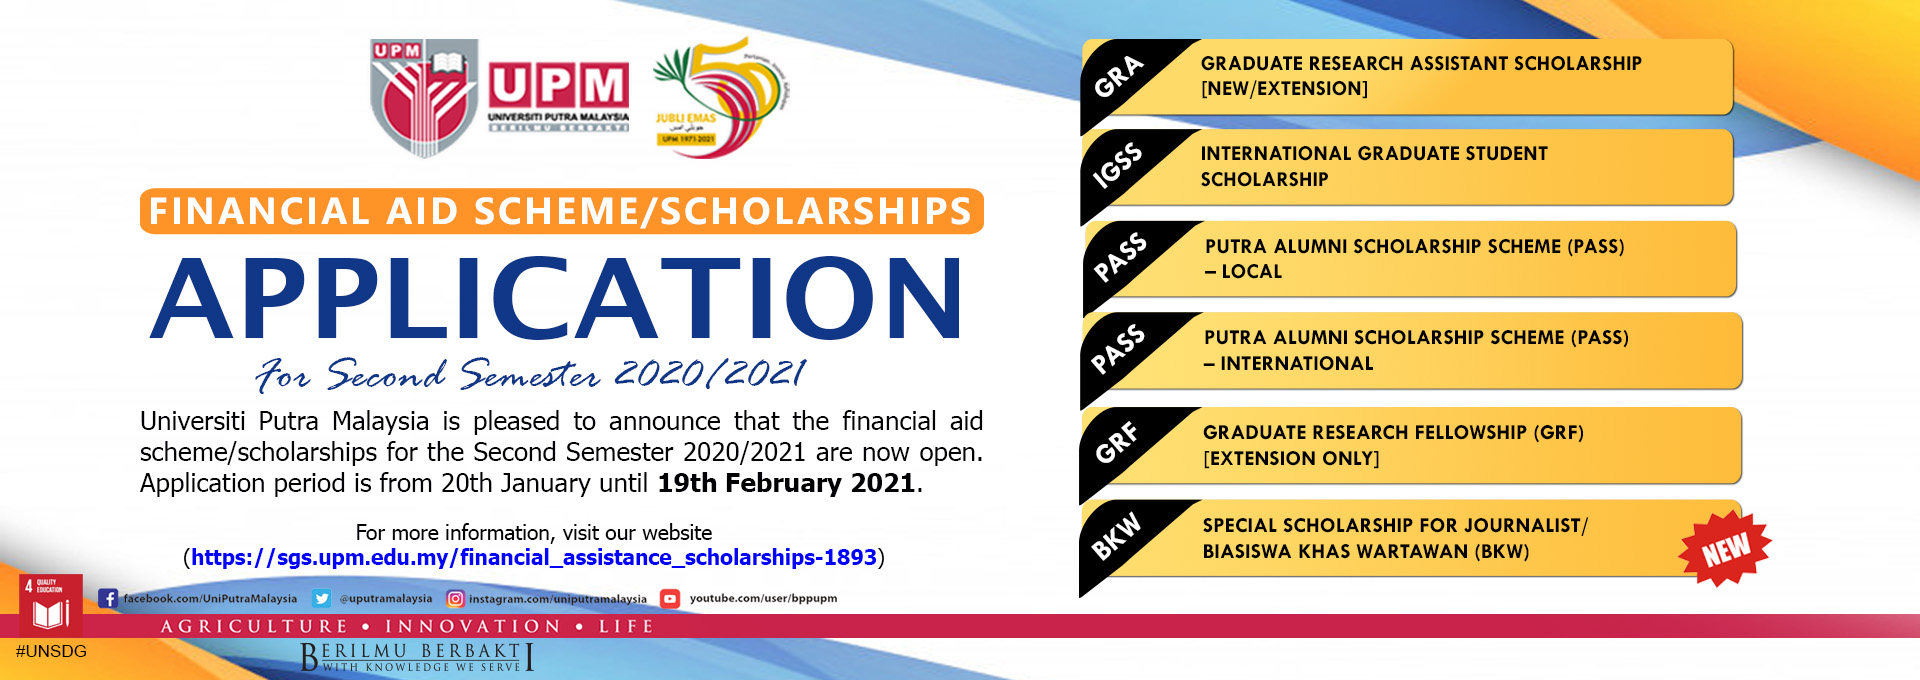 FINANCIAL AID SCHEME/SCHOLARSHIPS APPLICATION FOR SECOND SEMESTER 2020/2021